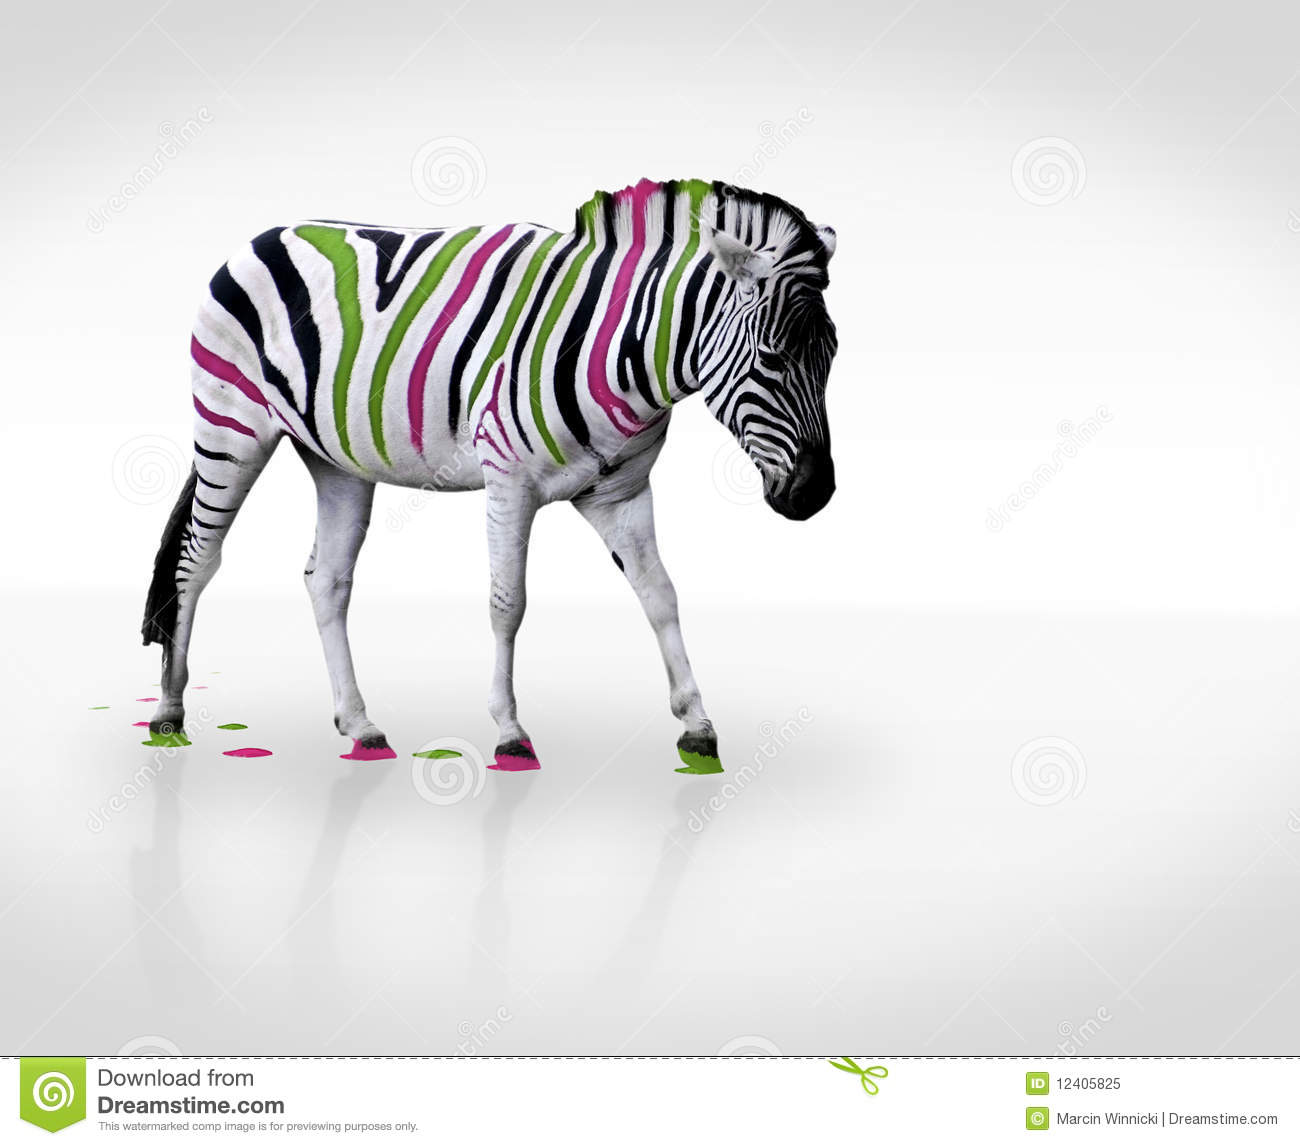 creative zebra royalty free stock photo image 12405825 zebra clip art public domain zebra clipart images